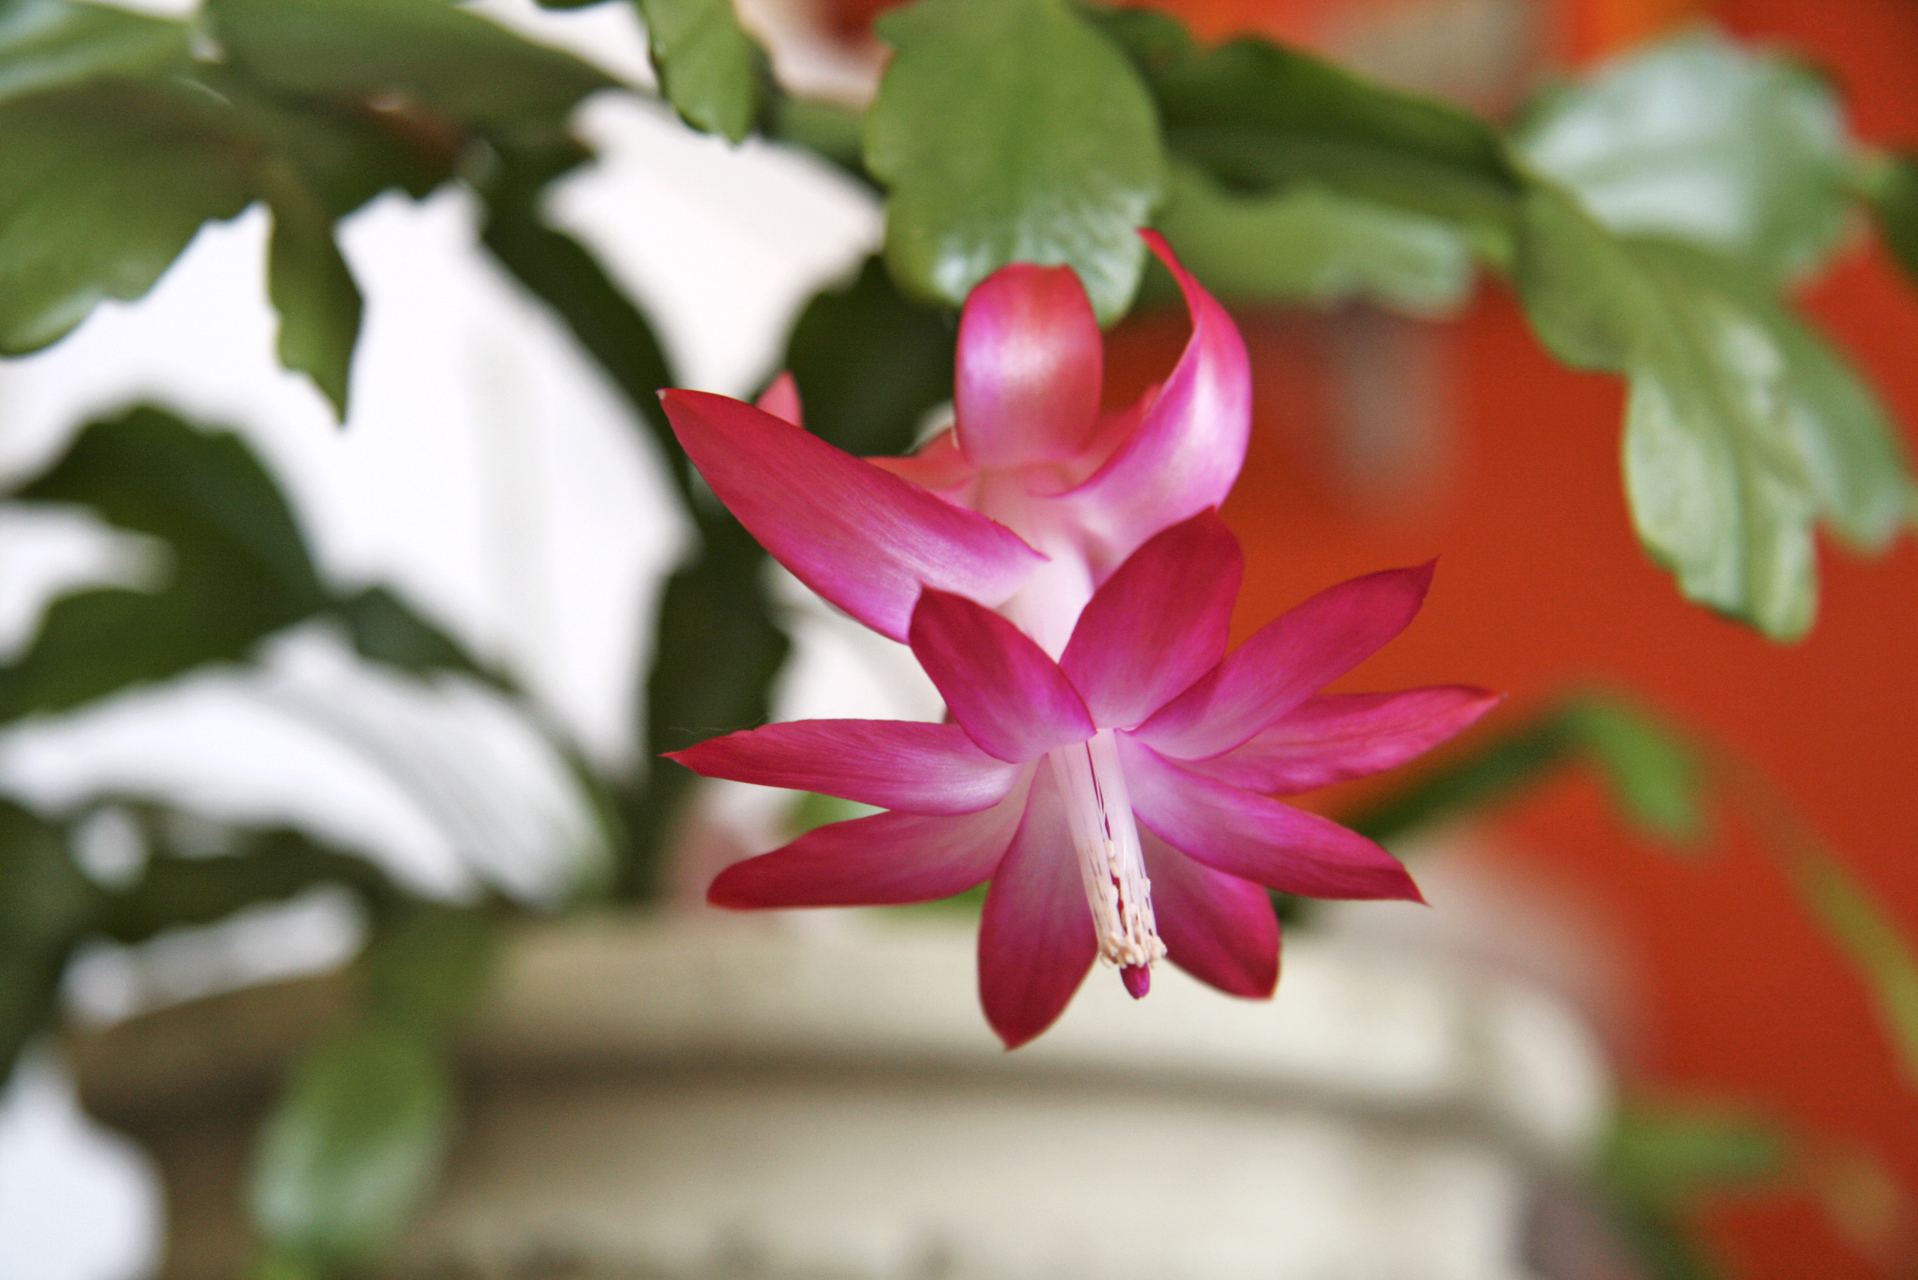 Christmas cactus care advice